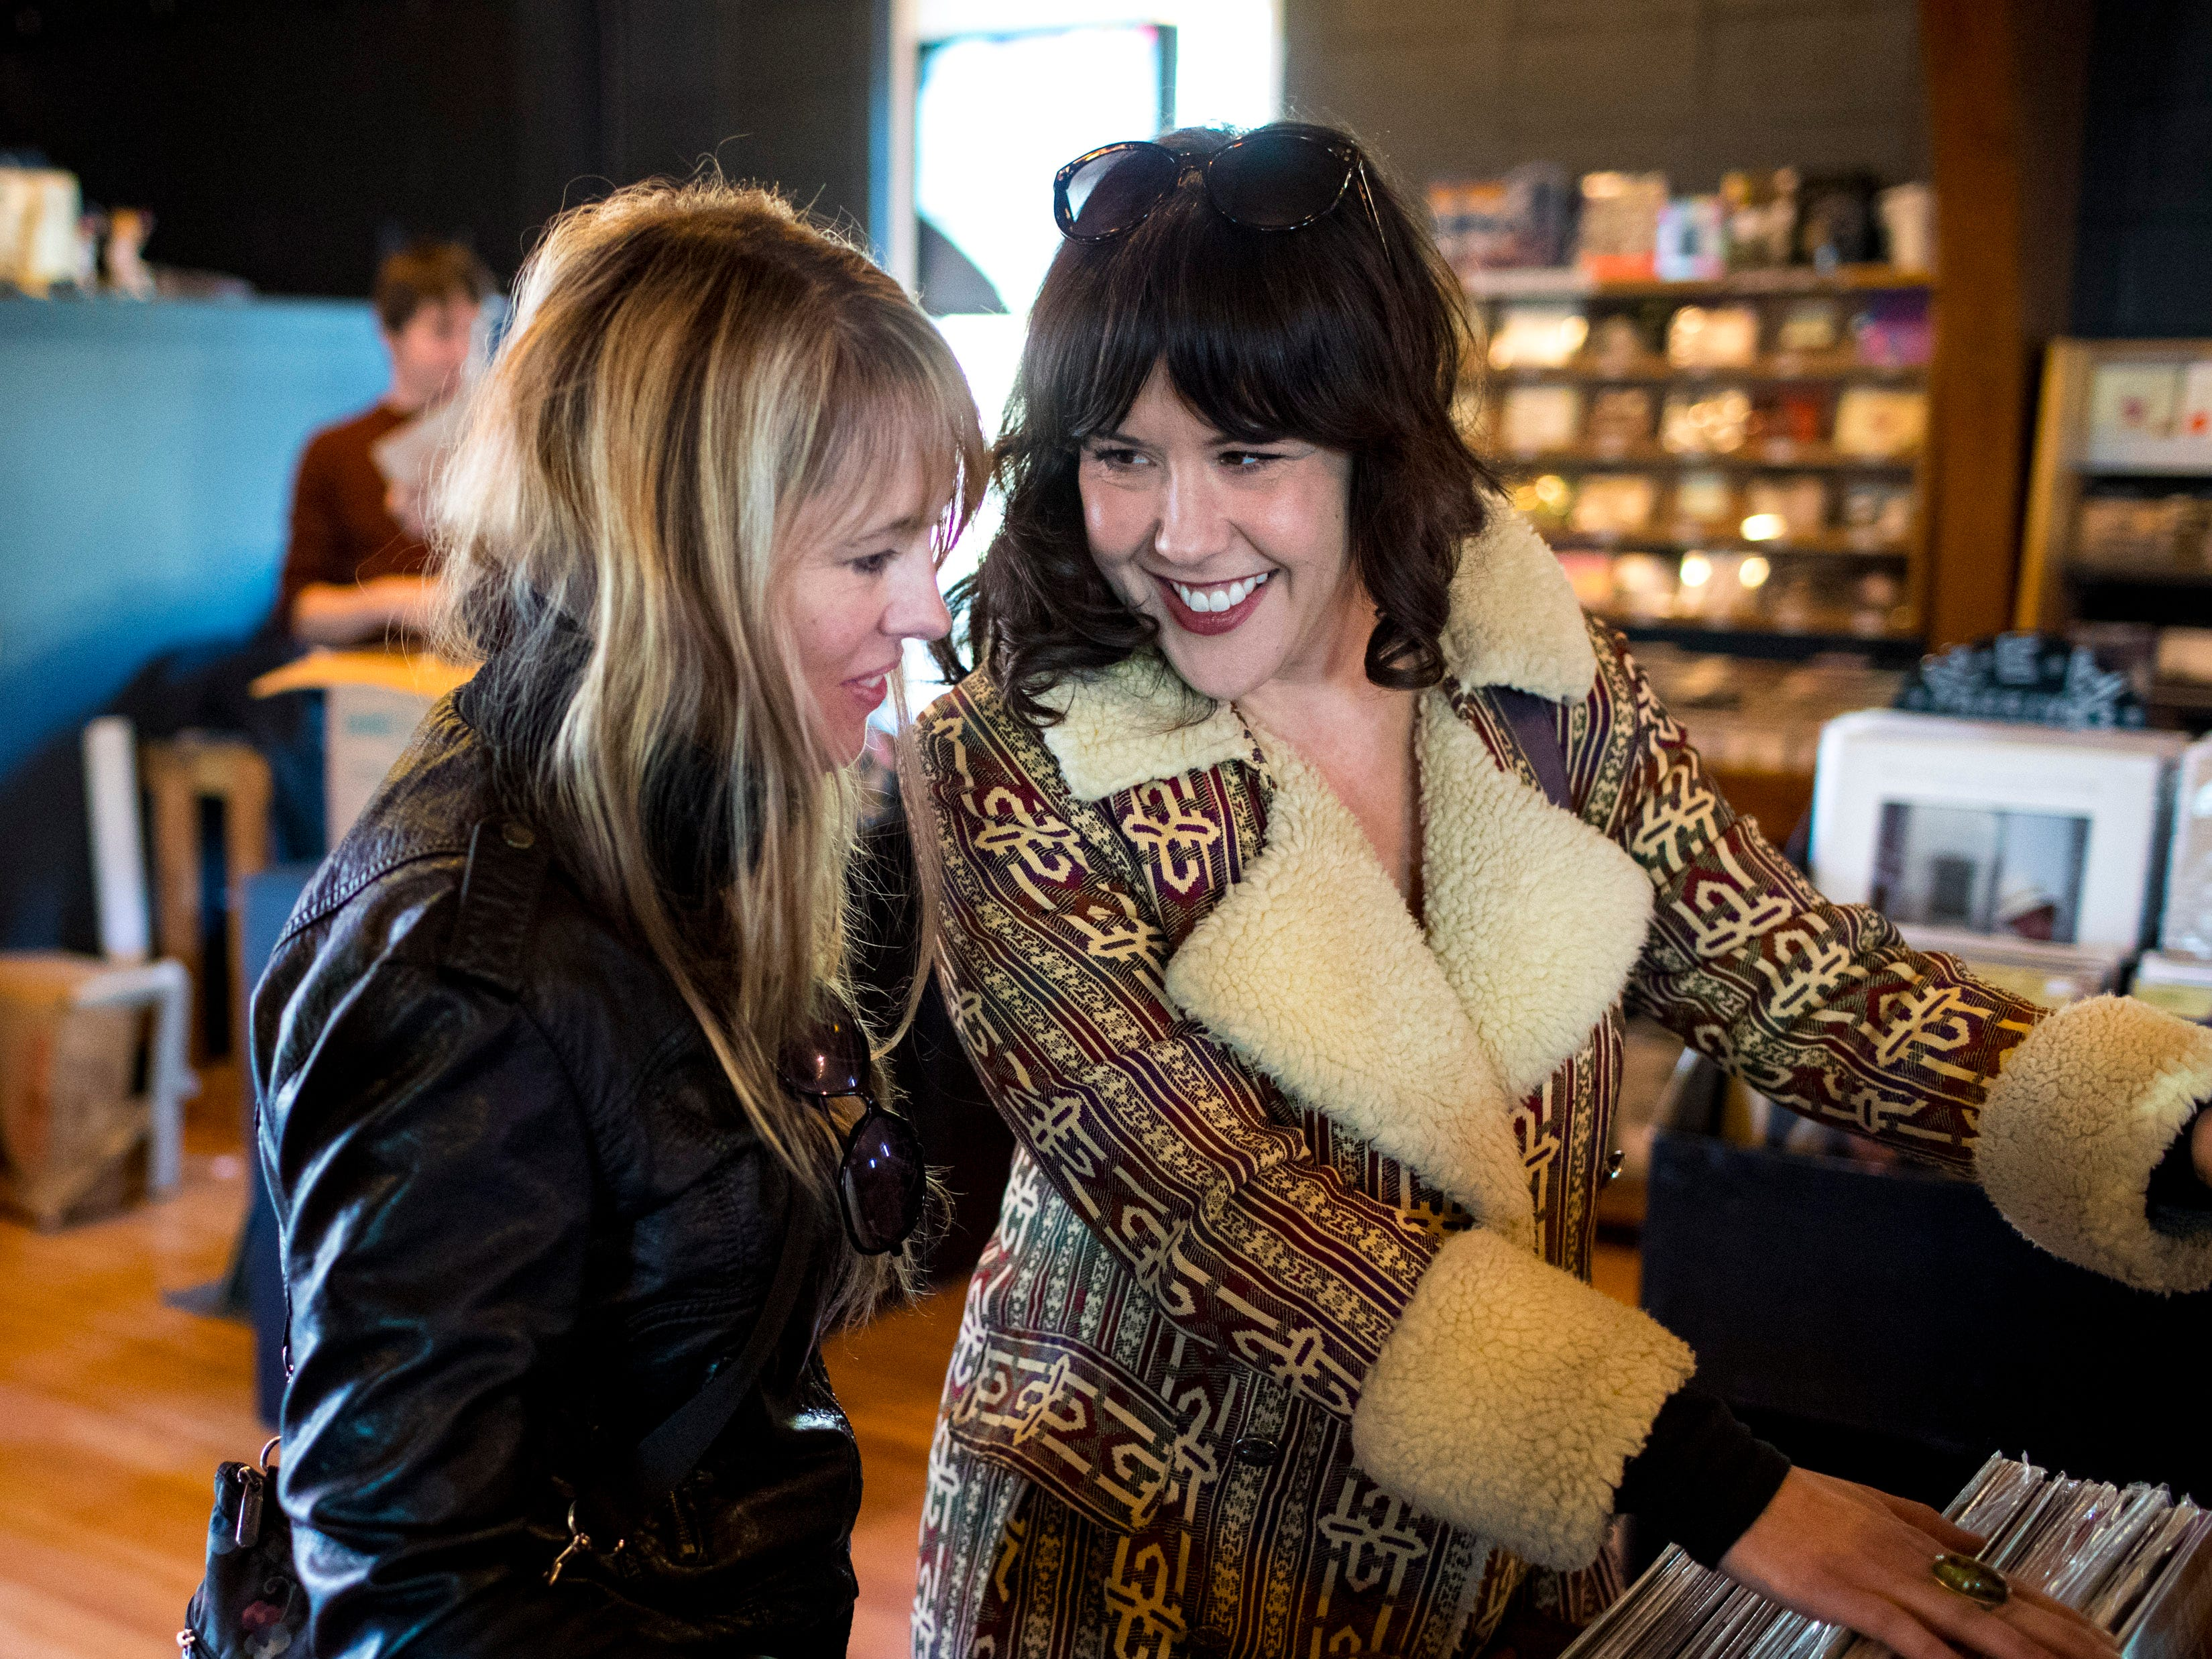 Sulayla Arnett, left, and Kashena Sampson browse the records at the new location of Grimey's New & Preloved Music in Nashville on Saturday, Nov. 10, 2018.